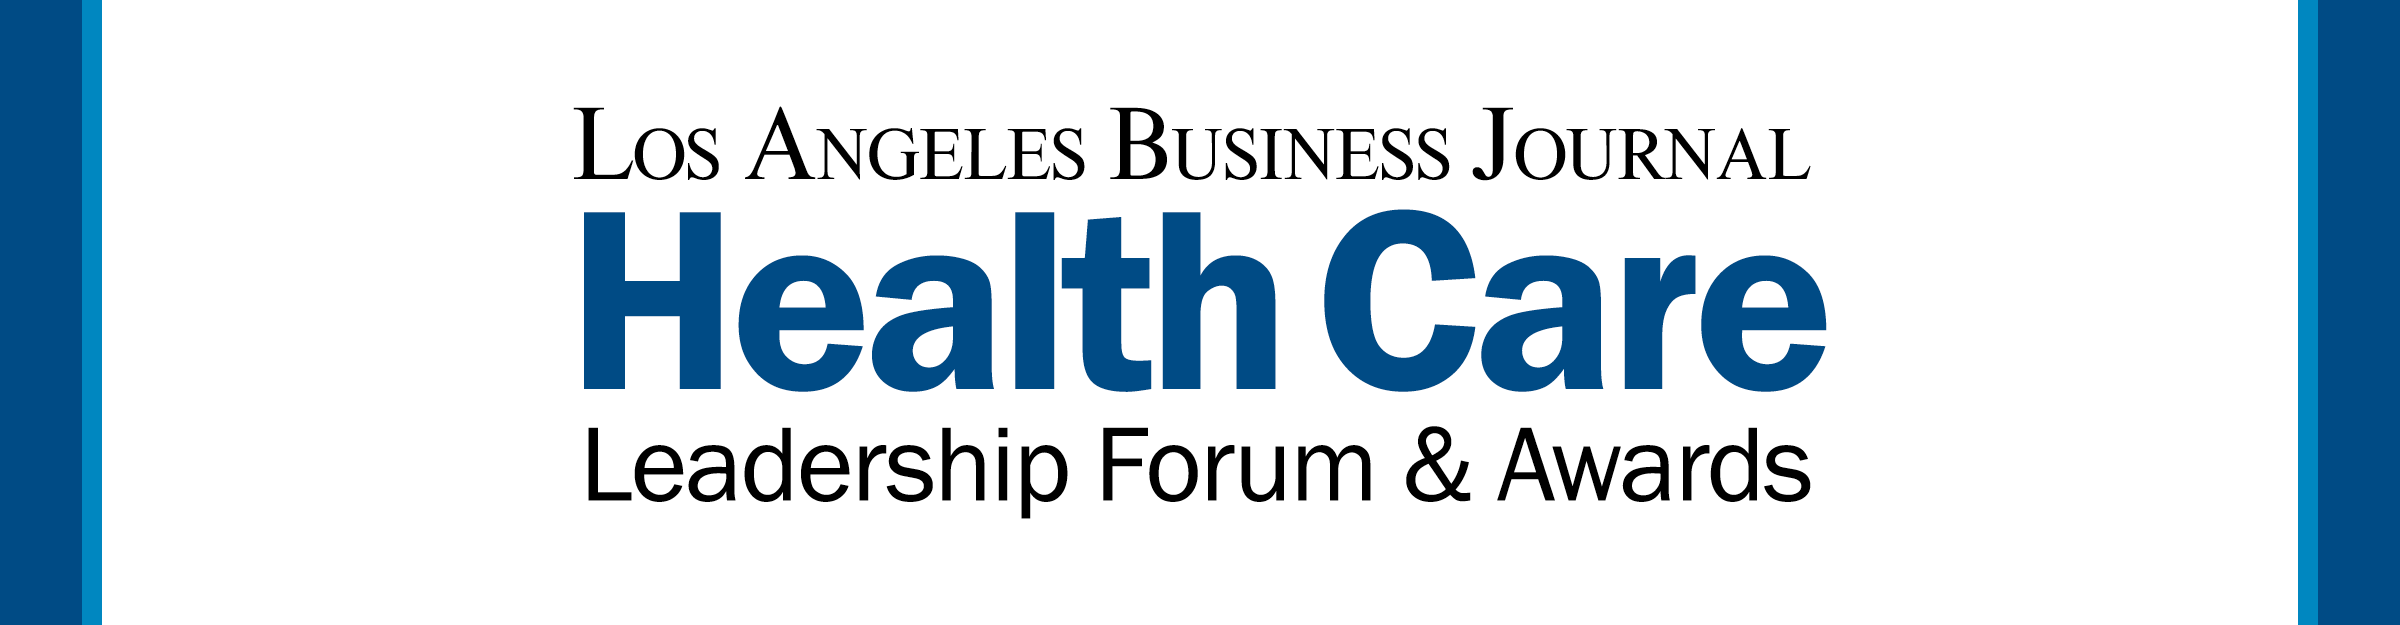 Los Angeles Business Journal Health Care Leadership Forum & Awards Event Banner